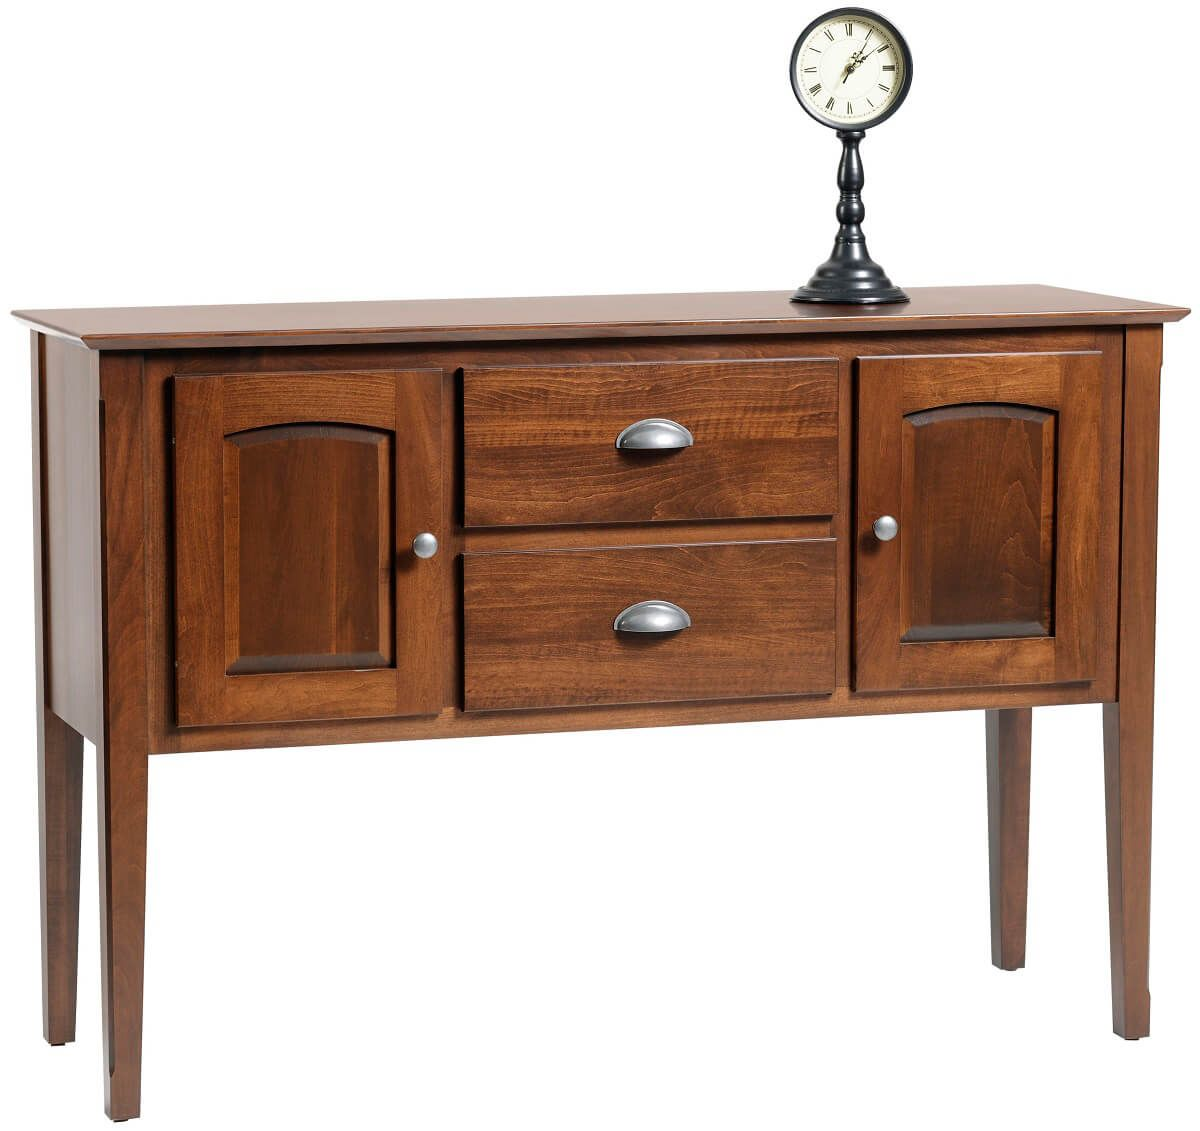 Malisa's Casual Dining Sideboard in Brown Maple